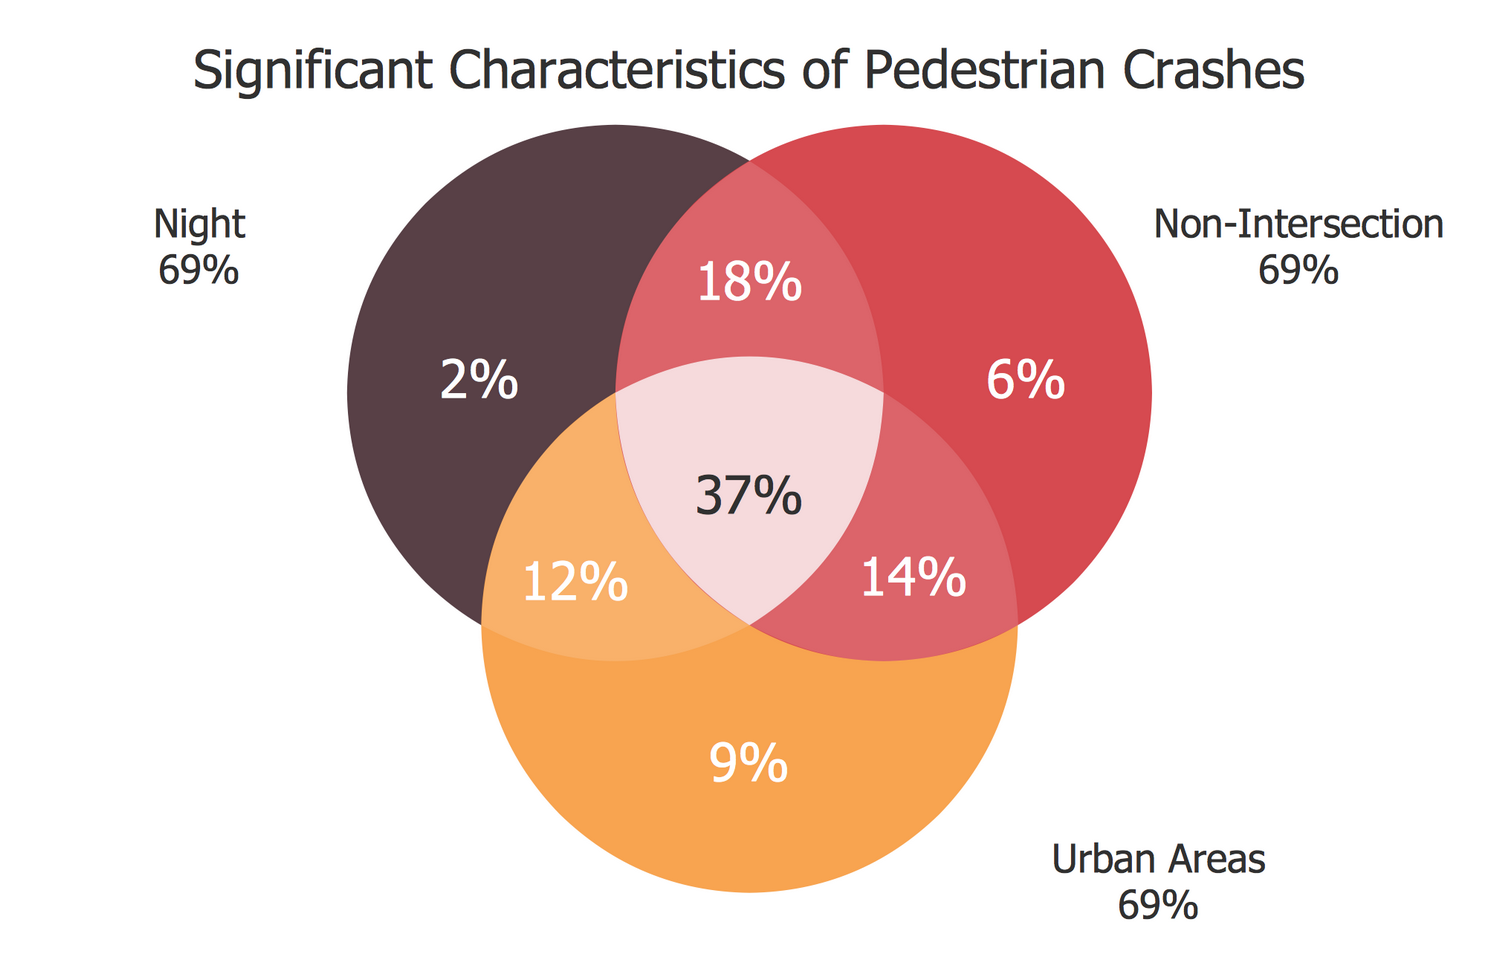 Venn Diagram — Significant Characteristics of Pedestrian Crashes